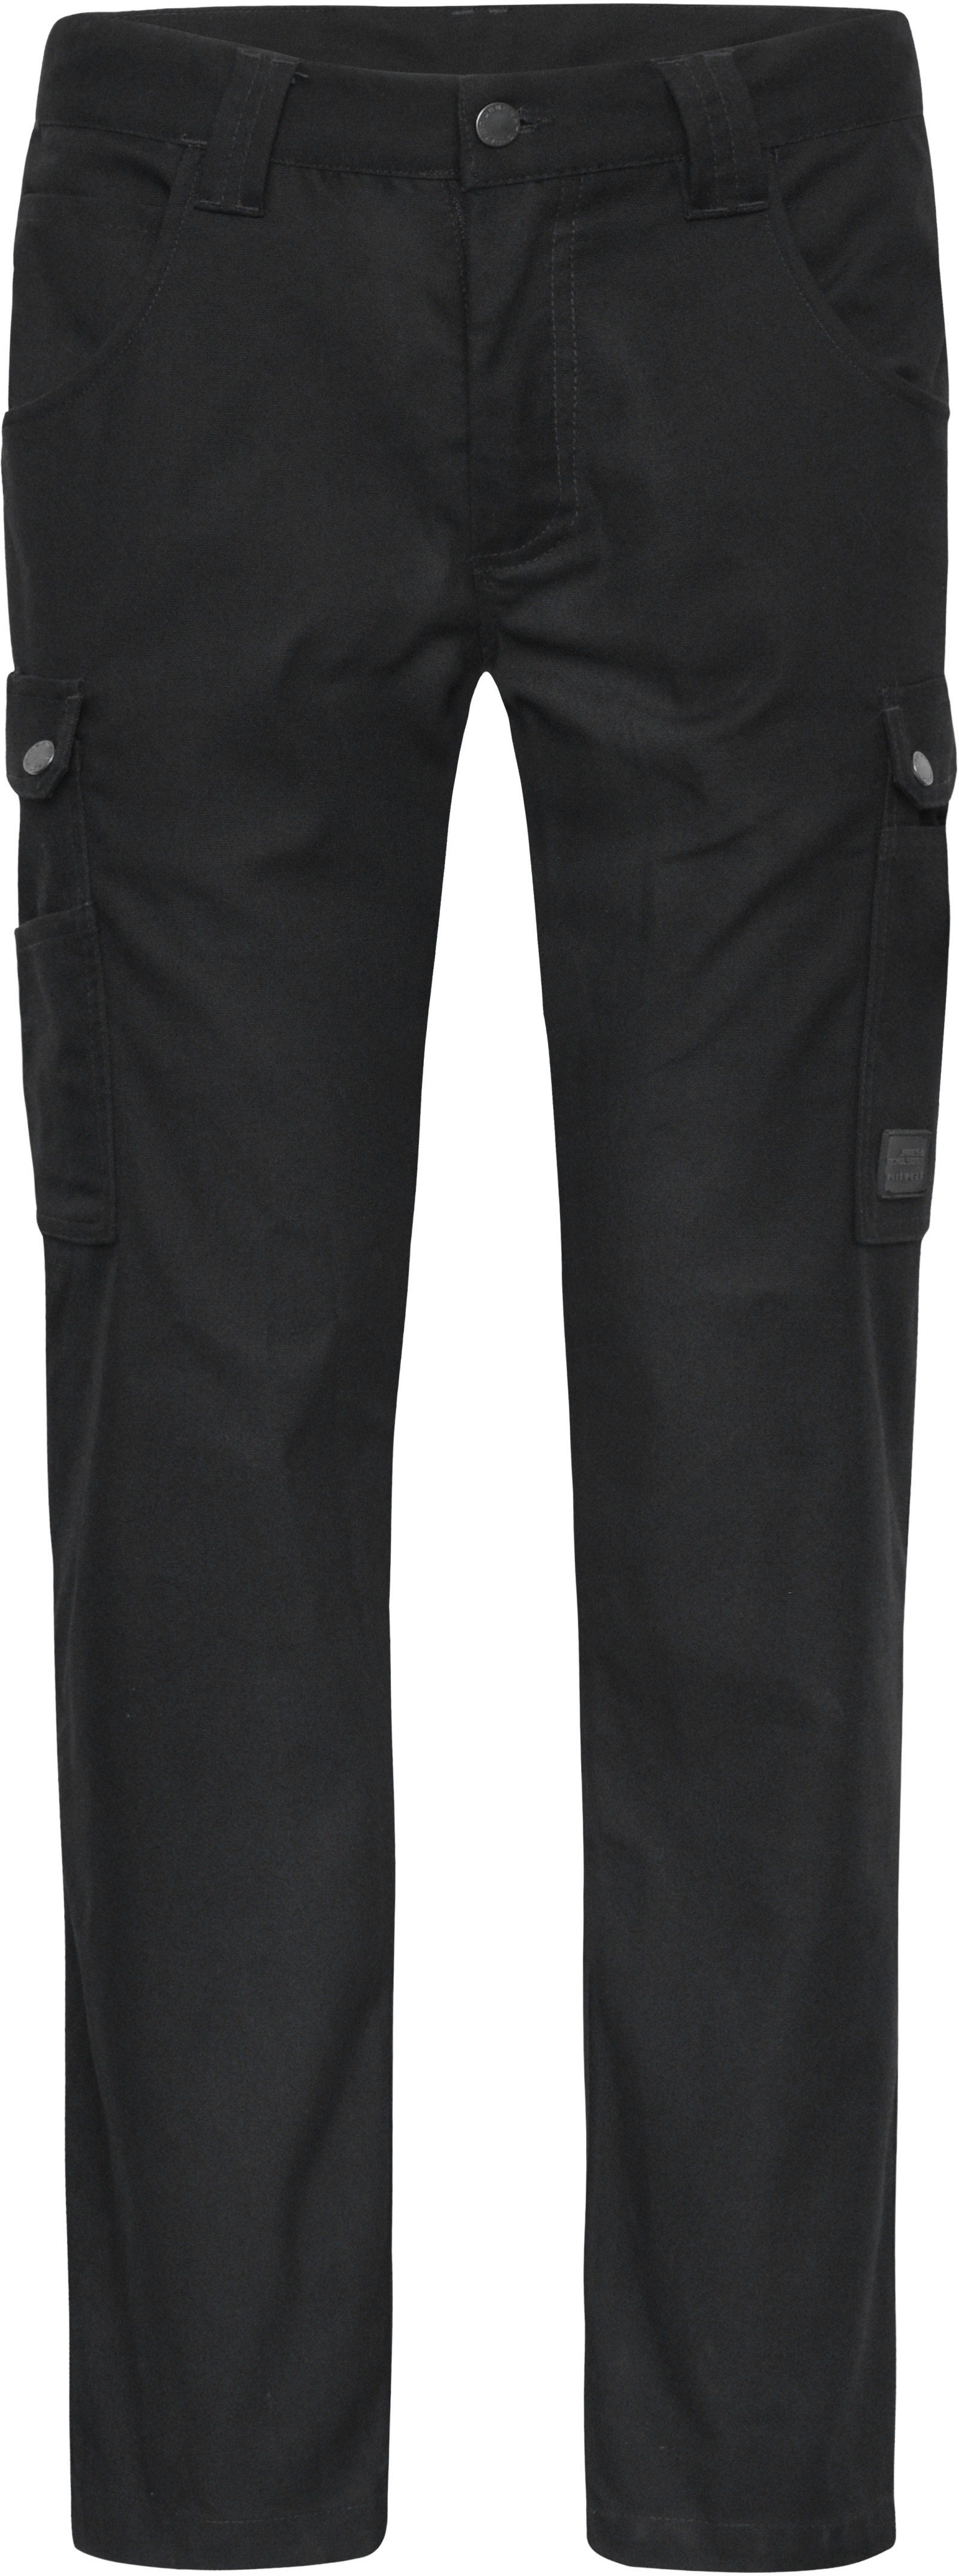 Workwear Cargo Pants -Solid-